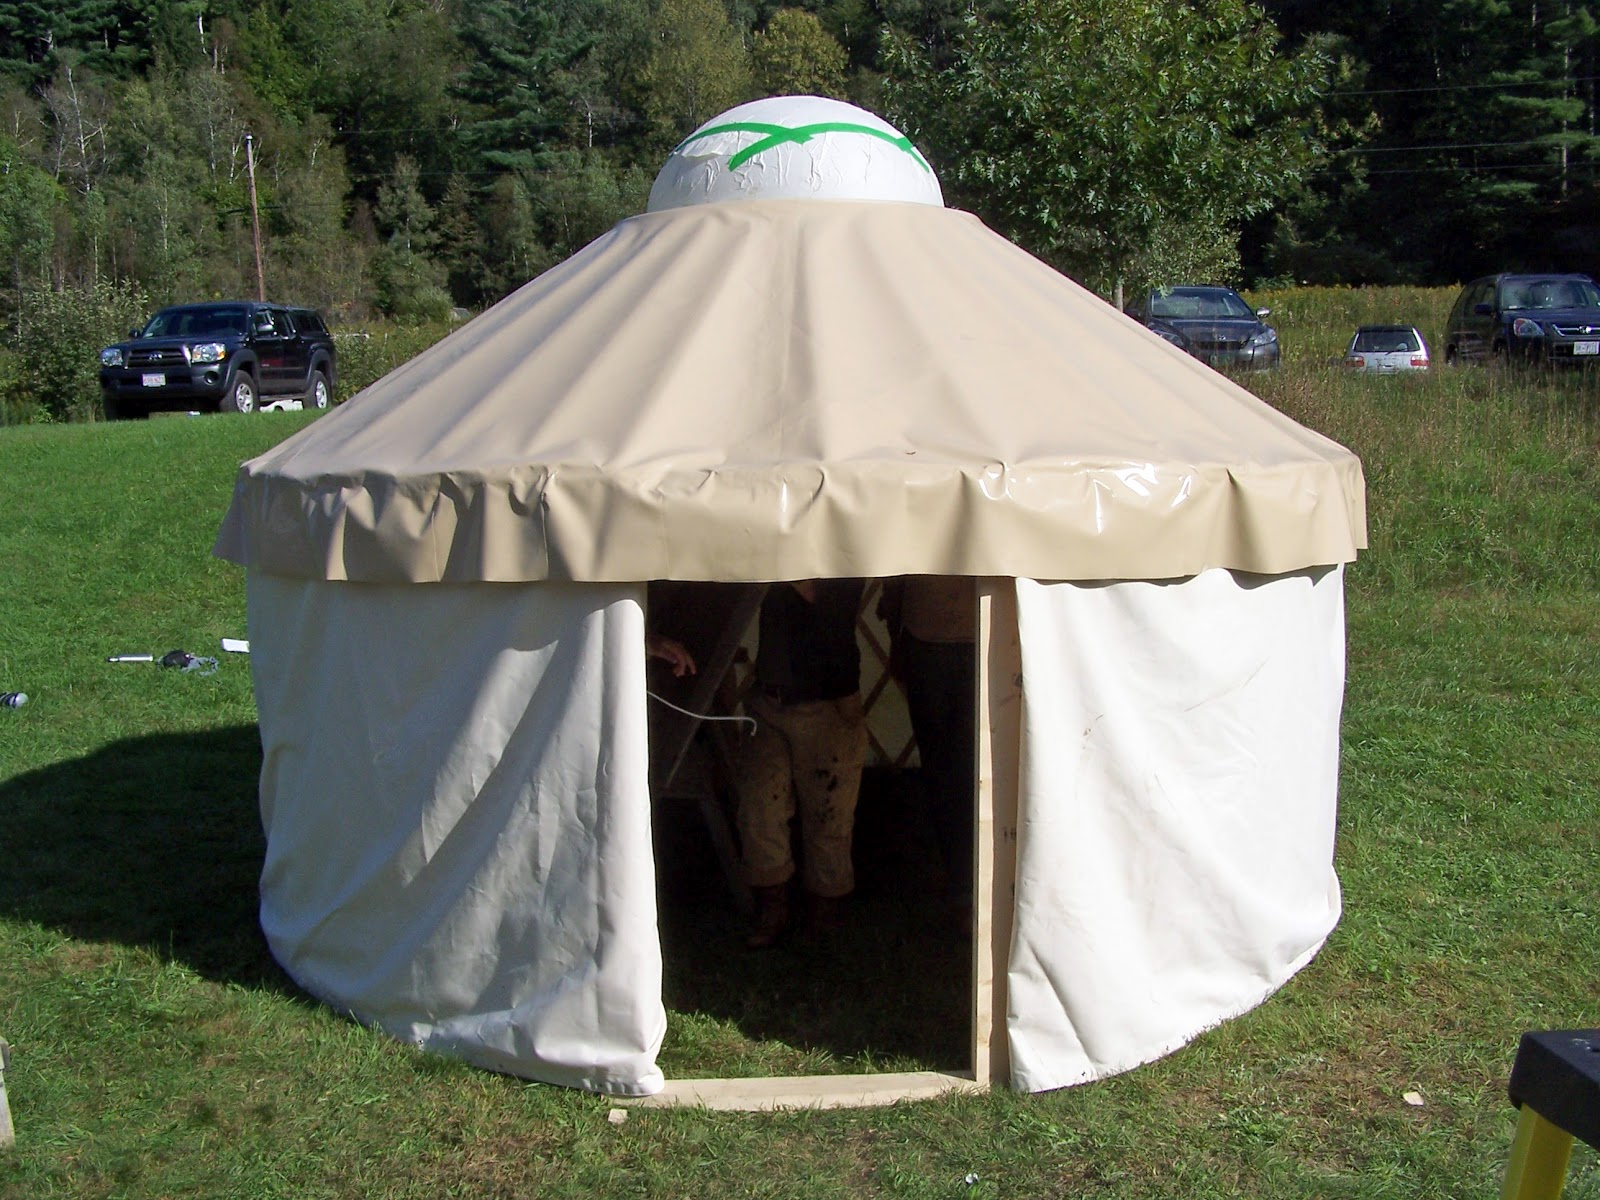 Yurt For Sale Yestermorrow Design Build School Build, price, and purchase the eagle yurt right now. yurt for sale yestermorrow design